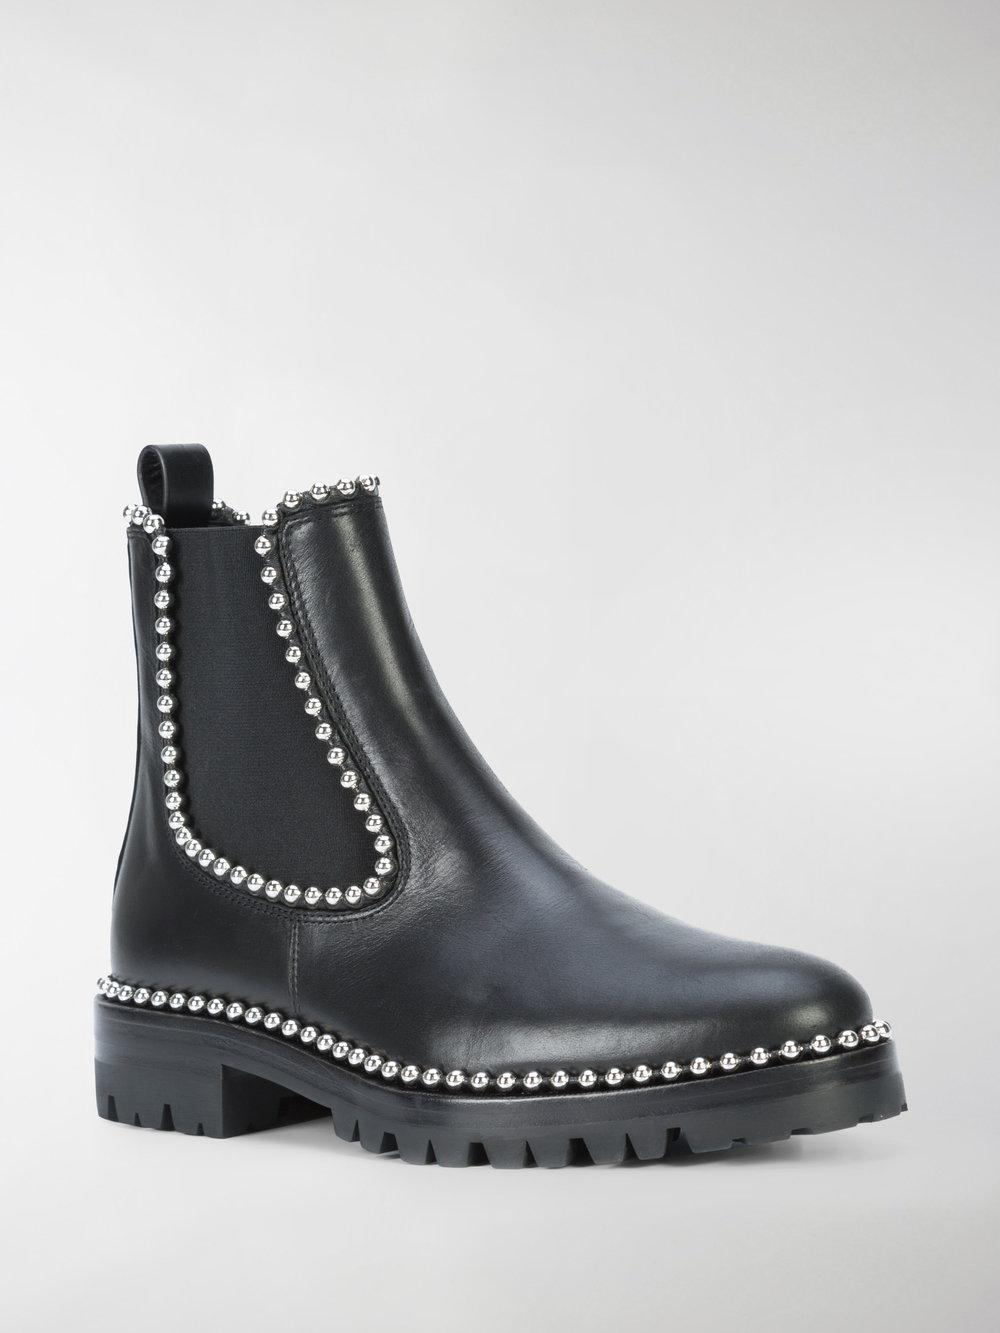 Alexander Wang Leather Spencer Chelsea Boot in Black